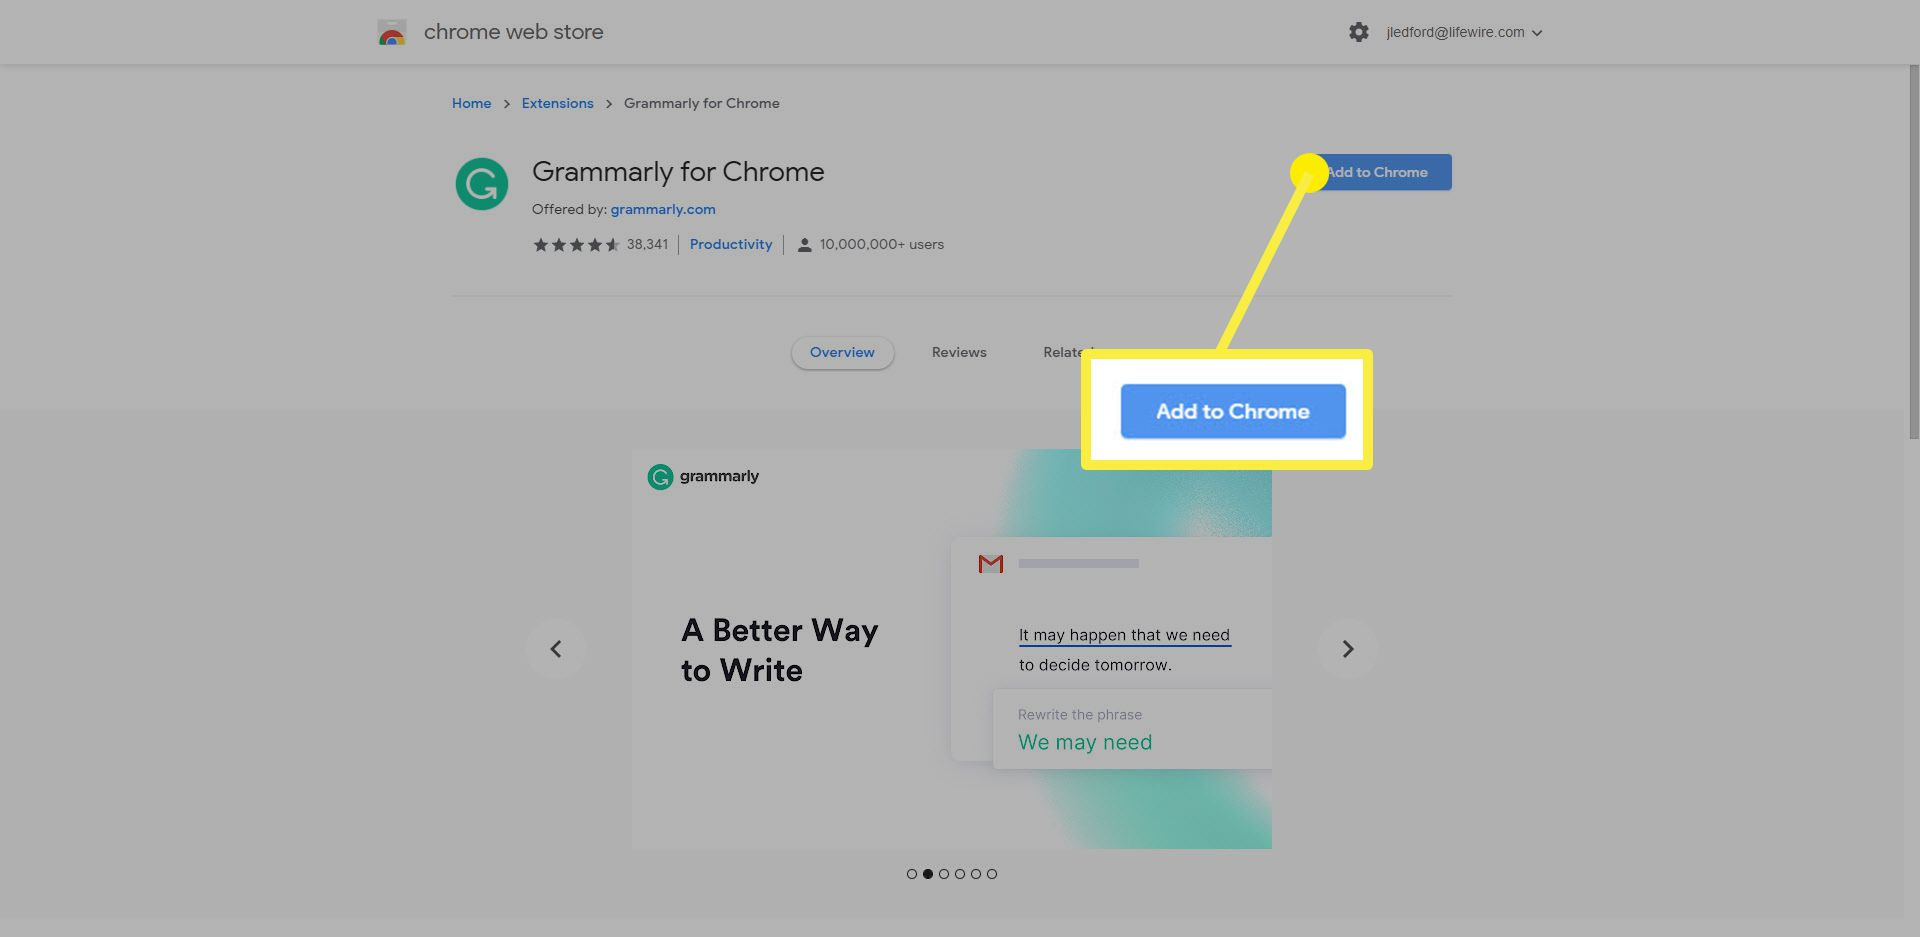 The Add to Chrome option on the Grammarly extension for Chrome.